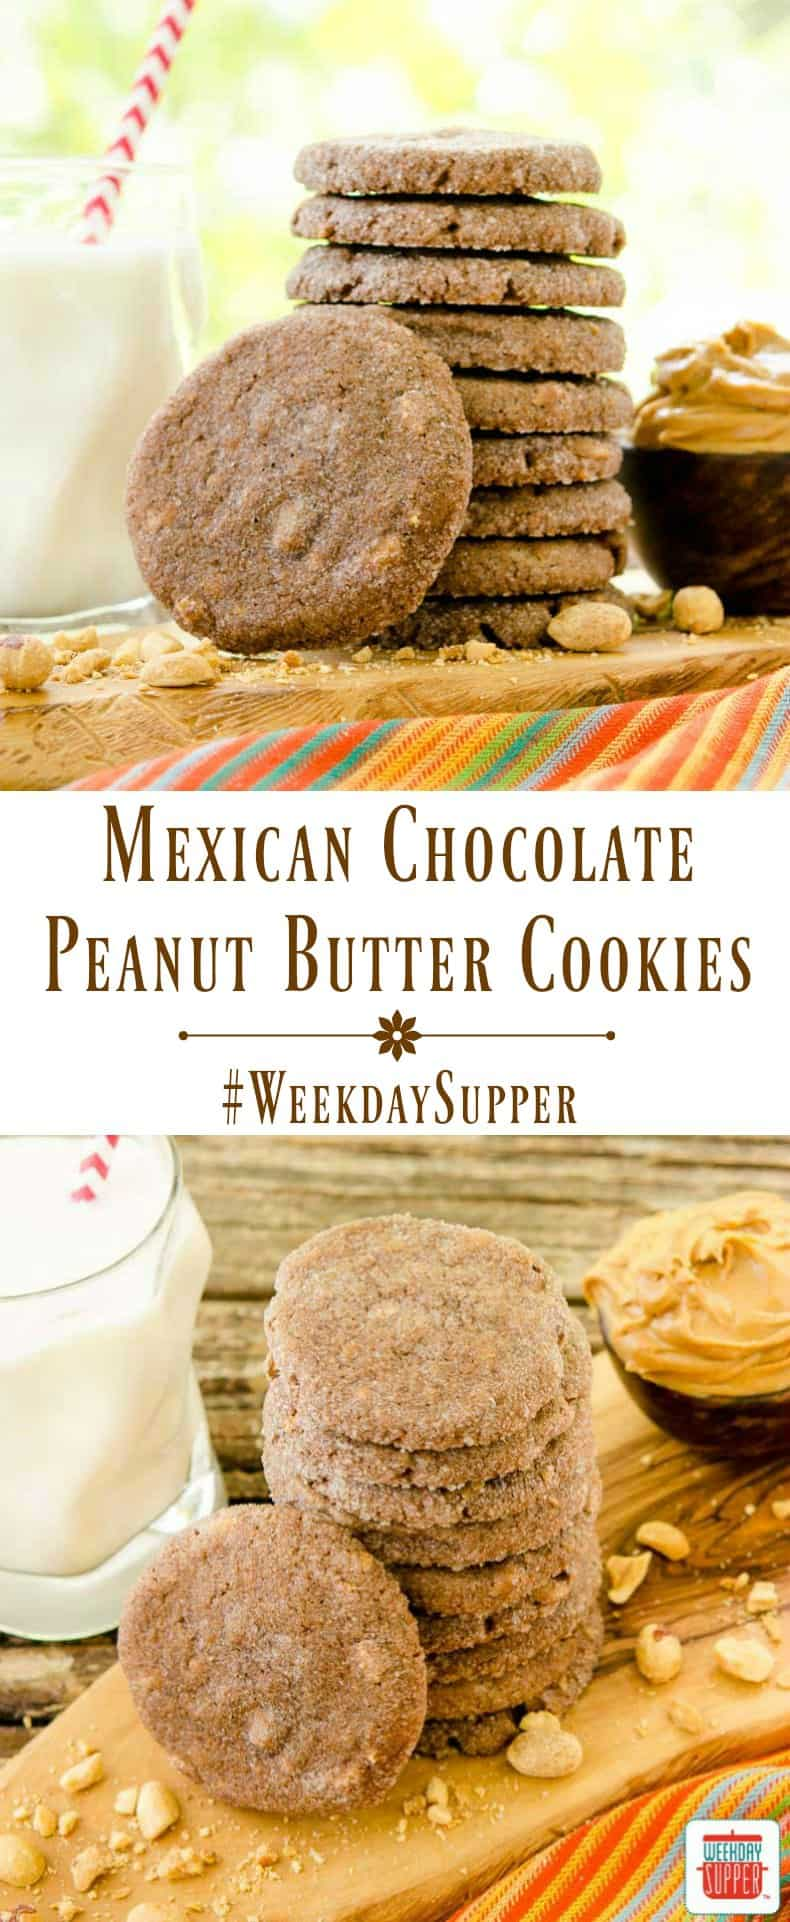 Mexican Chocolate Peanut Butter Cookies are crisp on the outside and soft inside. Masa harina gives them a special south of the border flavor. #WeekdaySupper